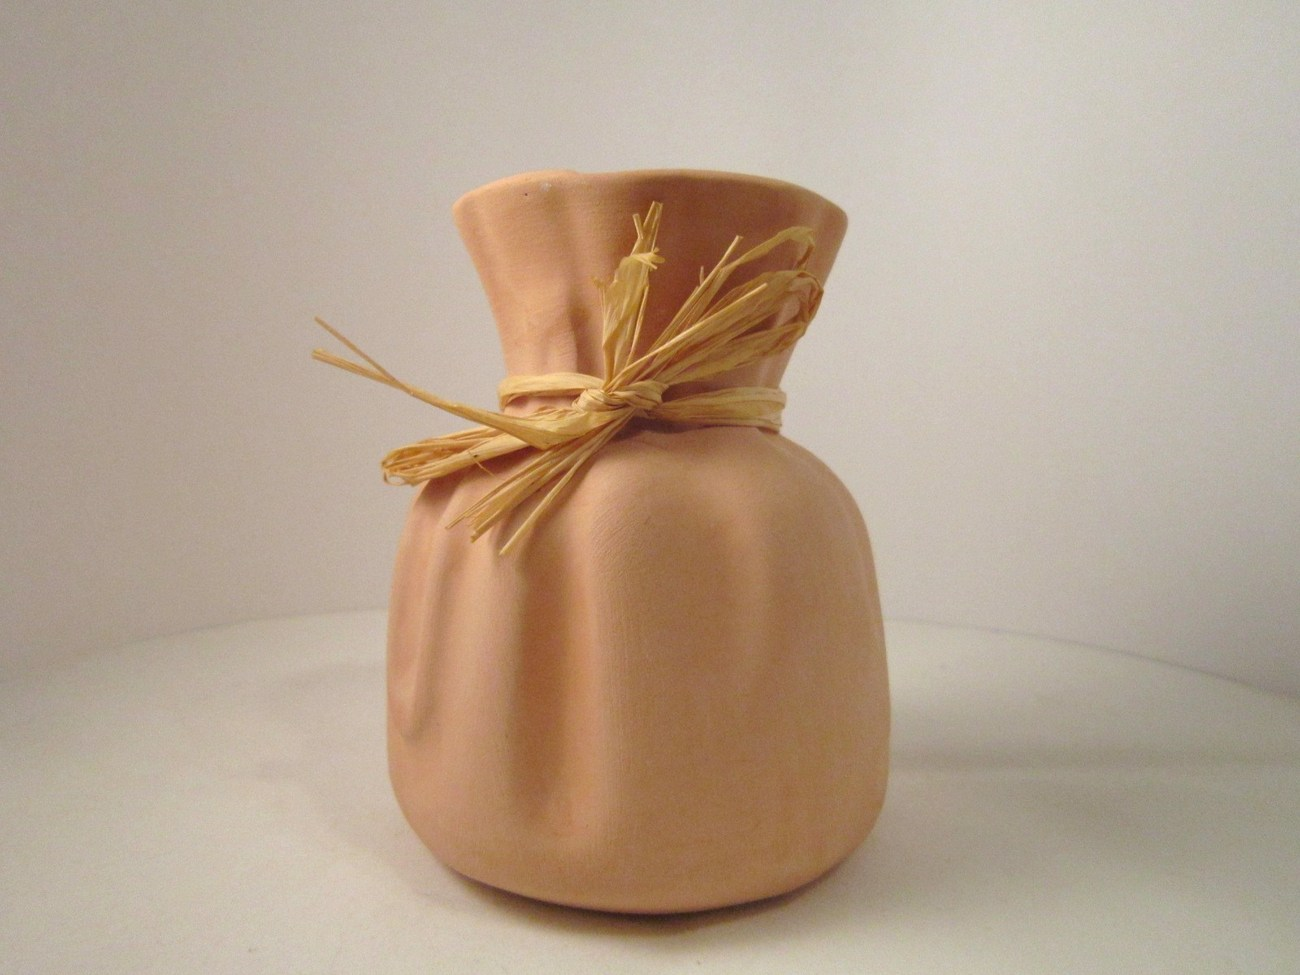 Vase_pink_clay_pottery_sack_01